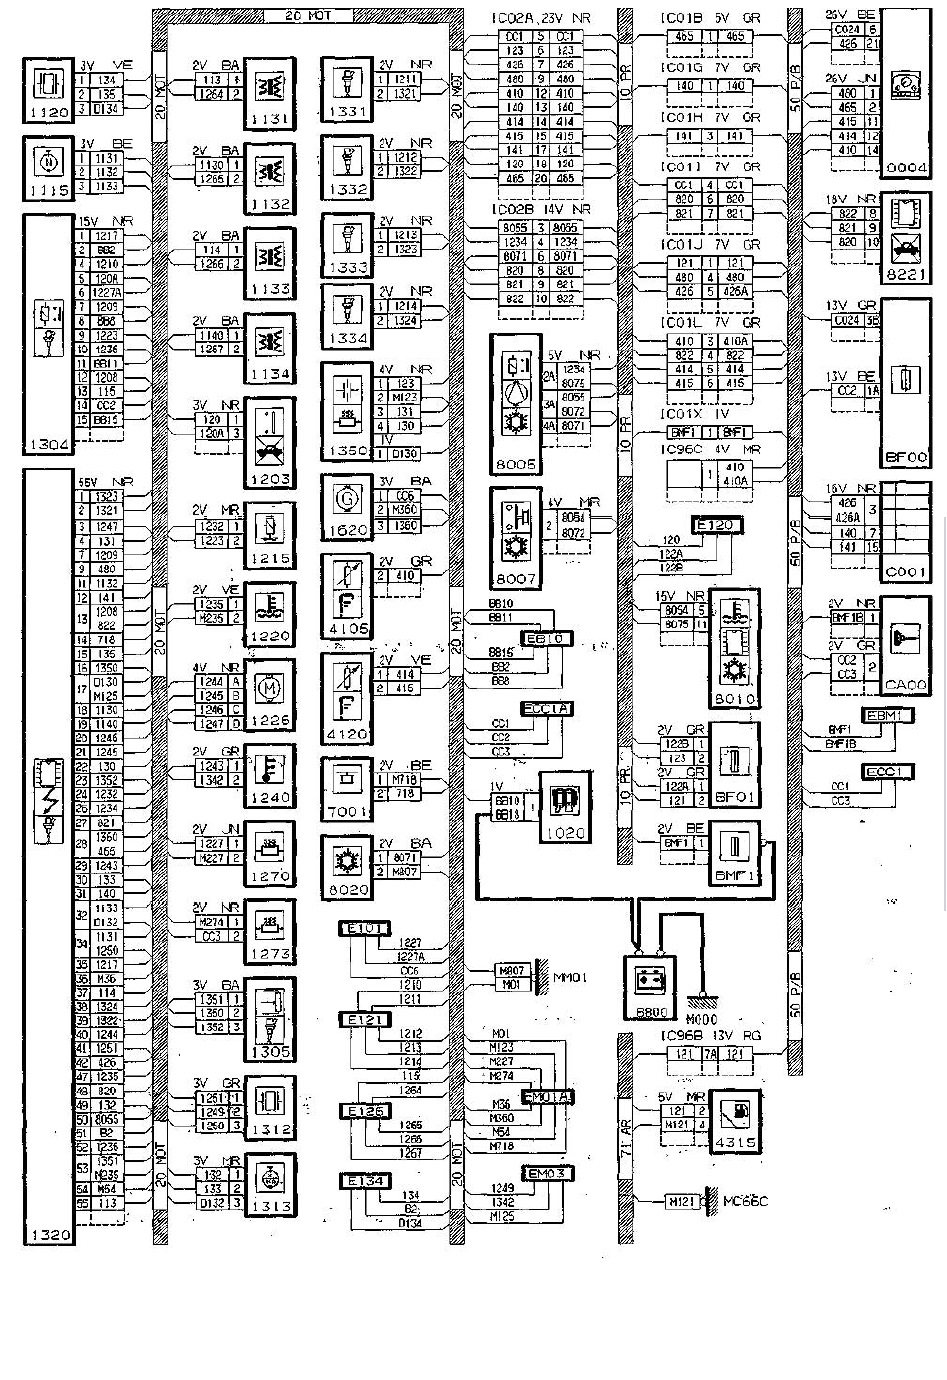 peugeot 306 window wiring diagram wiring diagram - electrical forum - peugeot 306 gti-6 ... peugeot 306 meridian wiring diagram